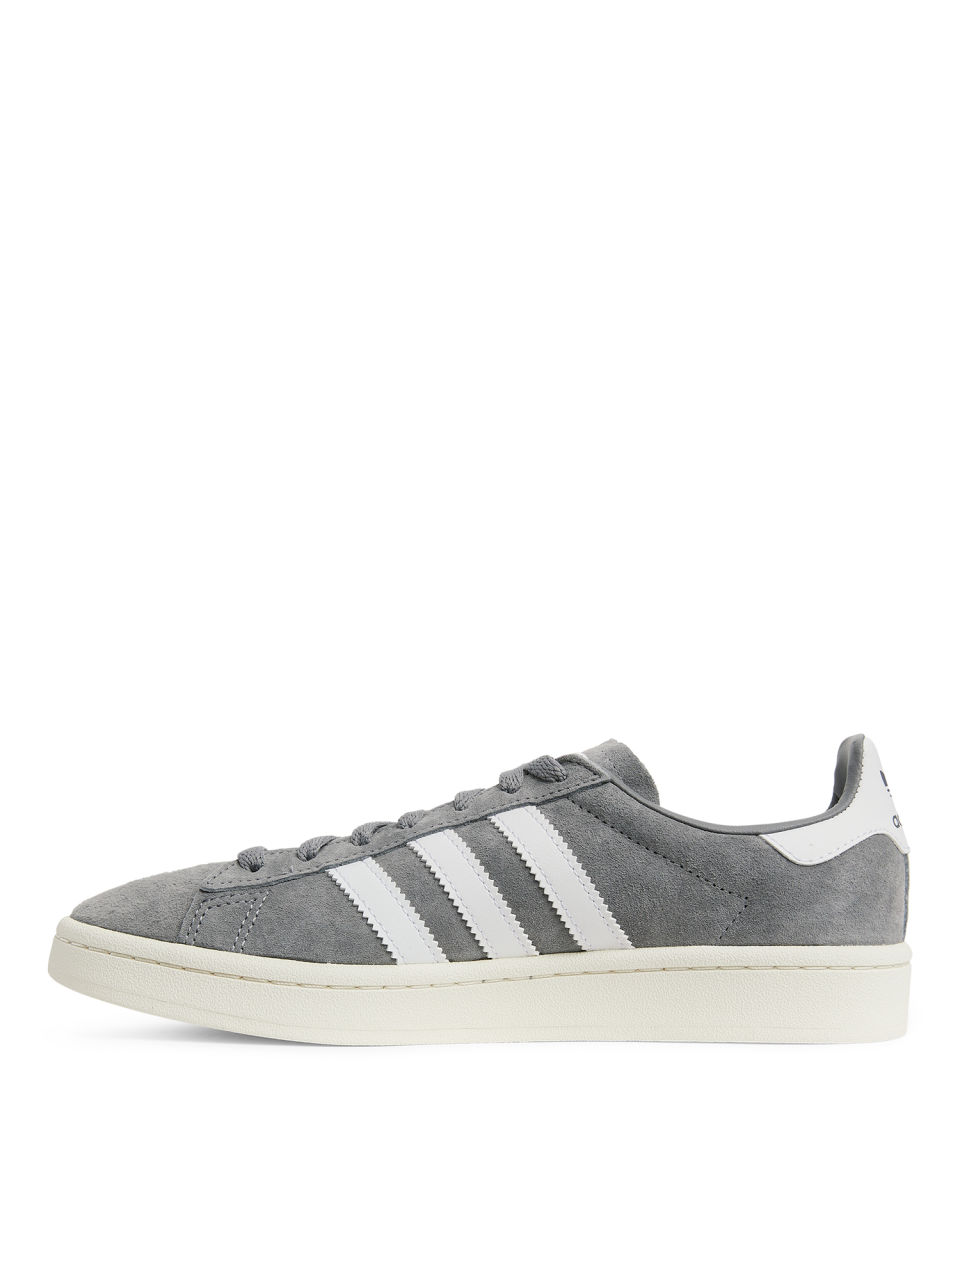 a77504538d7d Side image of Arket adidas campus trainers in grey ...